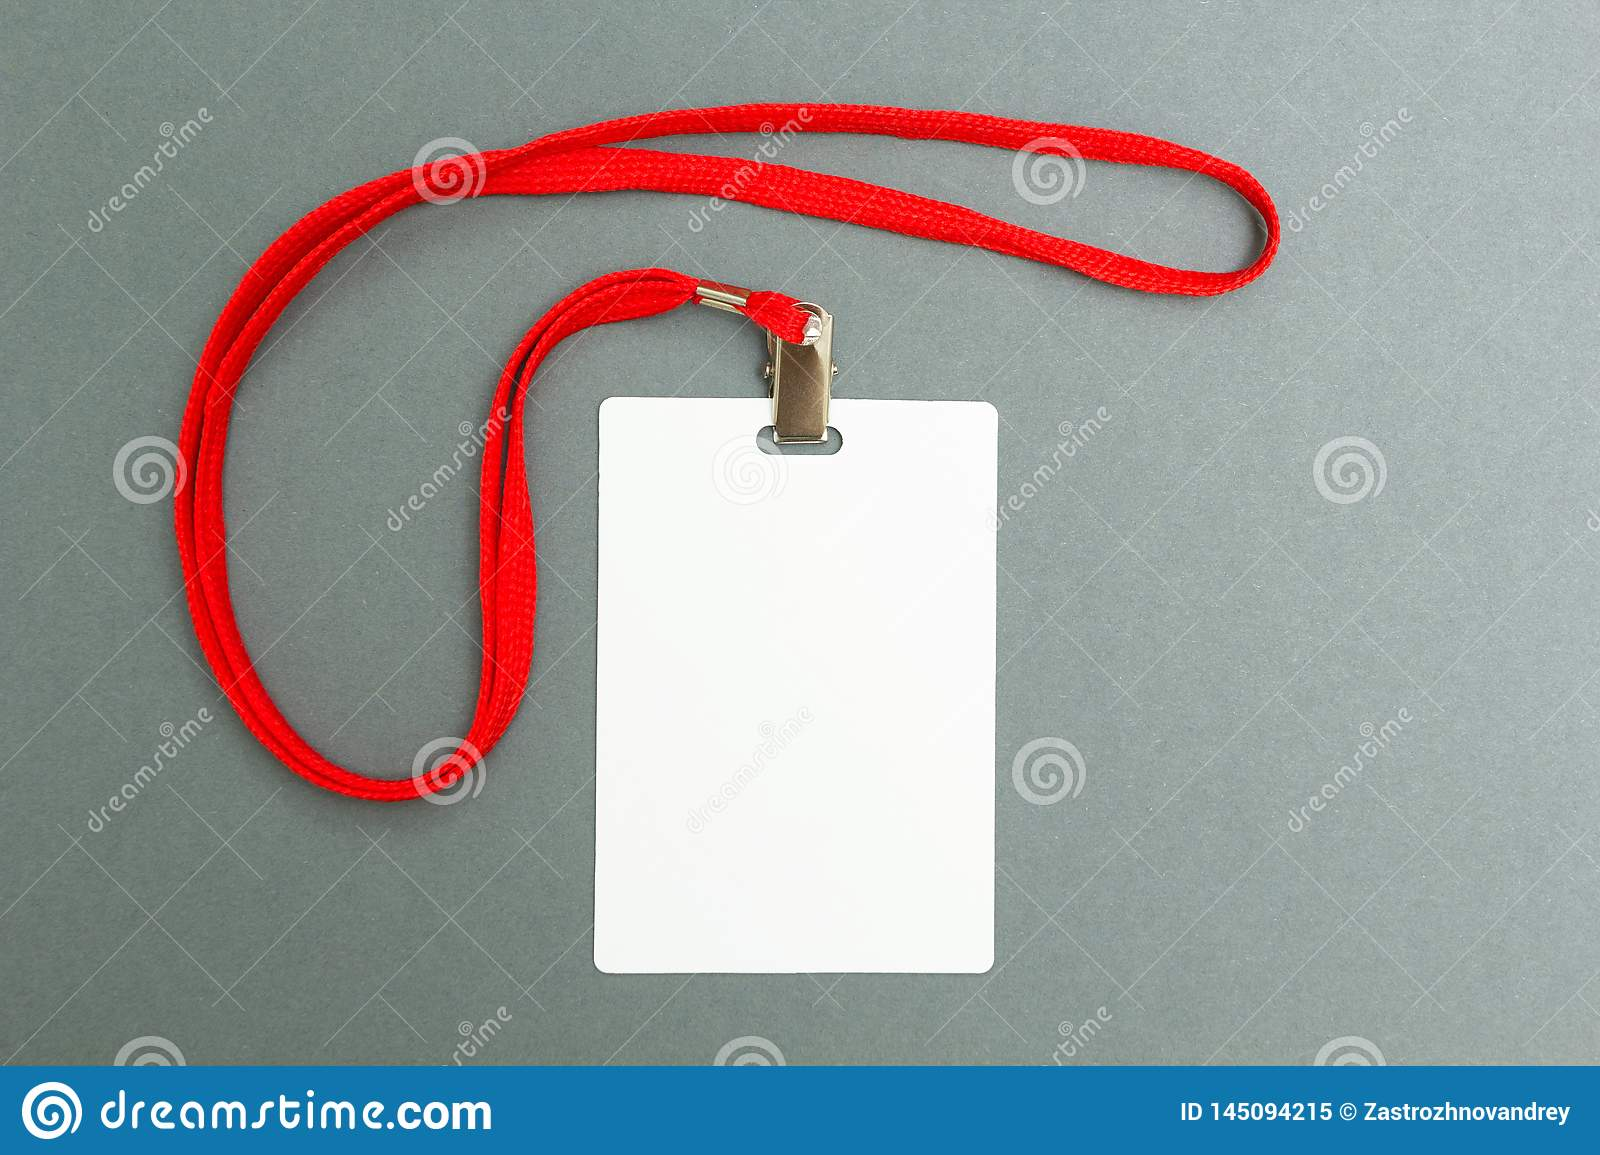 Empty layout layout isolated on black. A common blank label name tag hanging on the neck with a red thread on a gray background